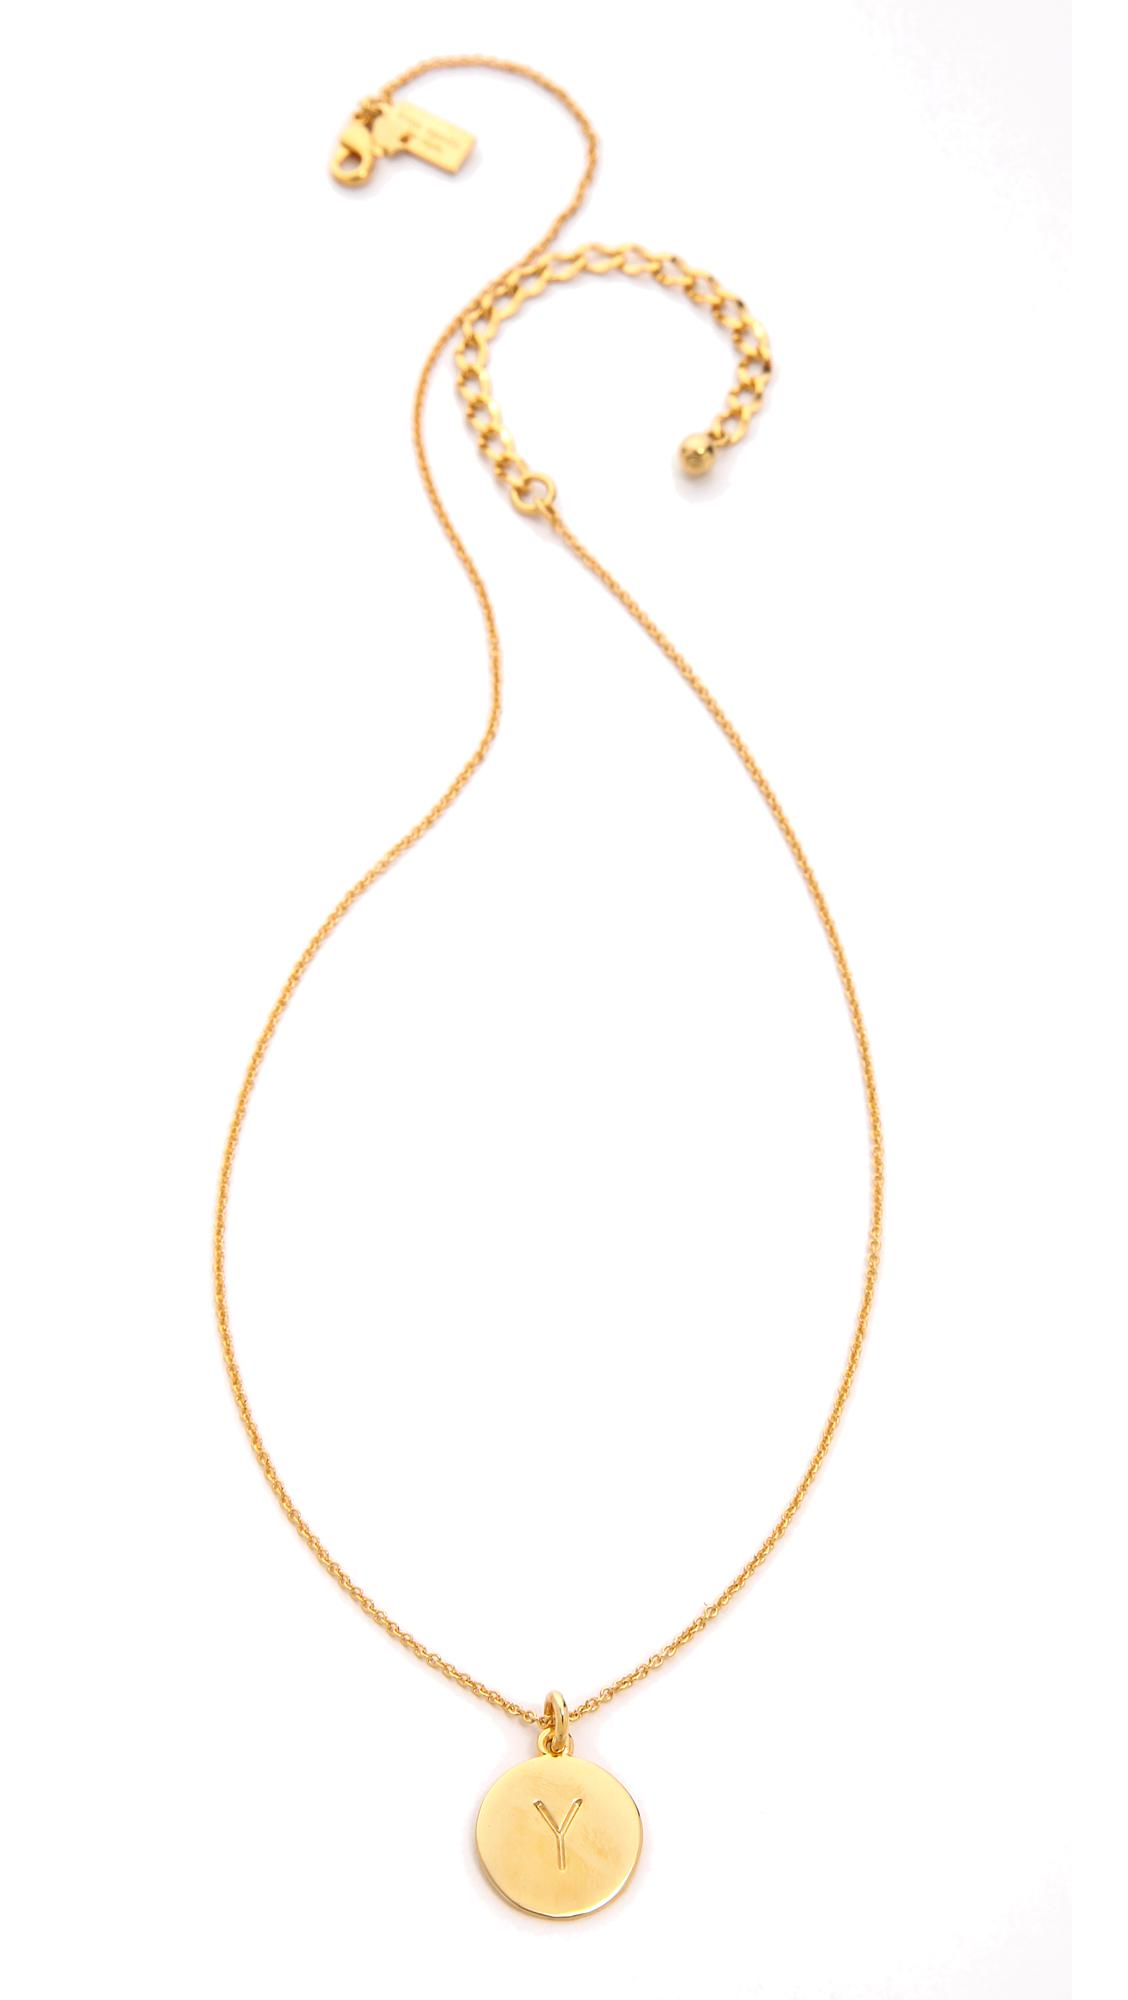 Kate Spade Letter Pendant Necklace in y (Metallic)